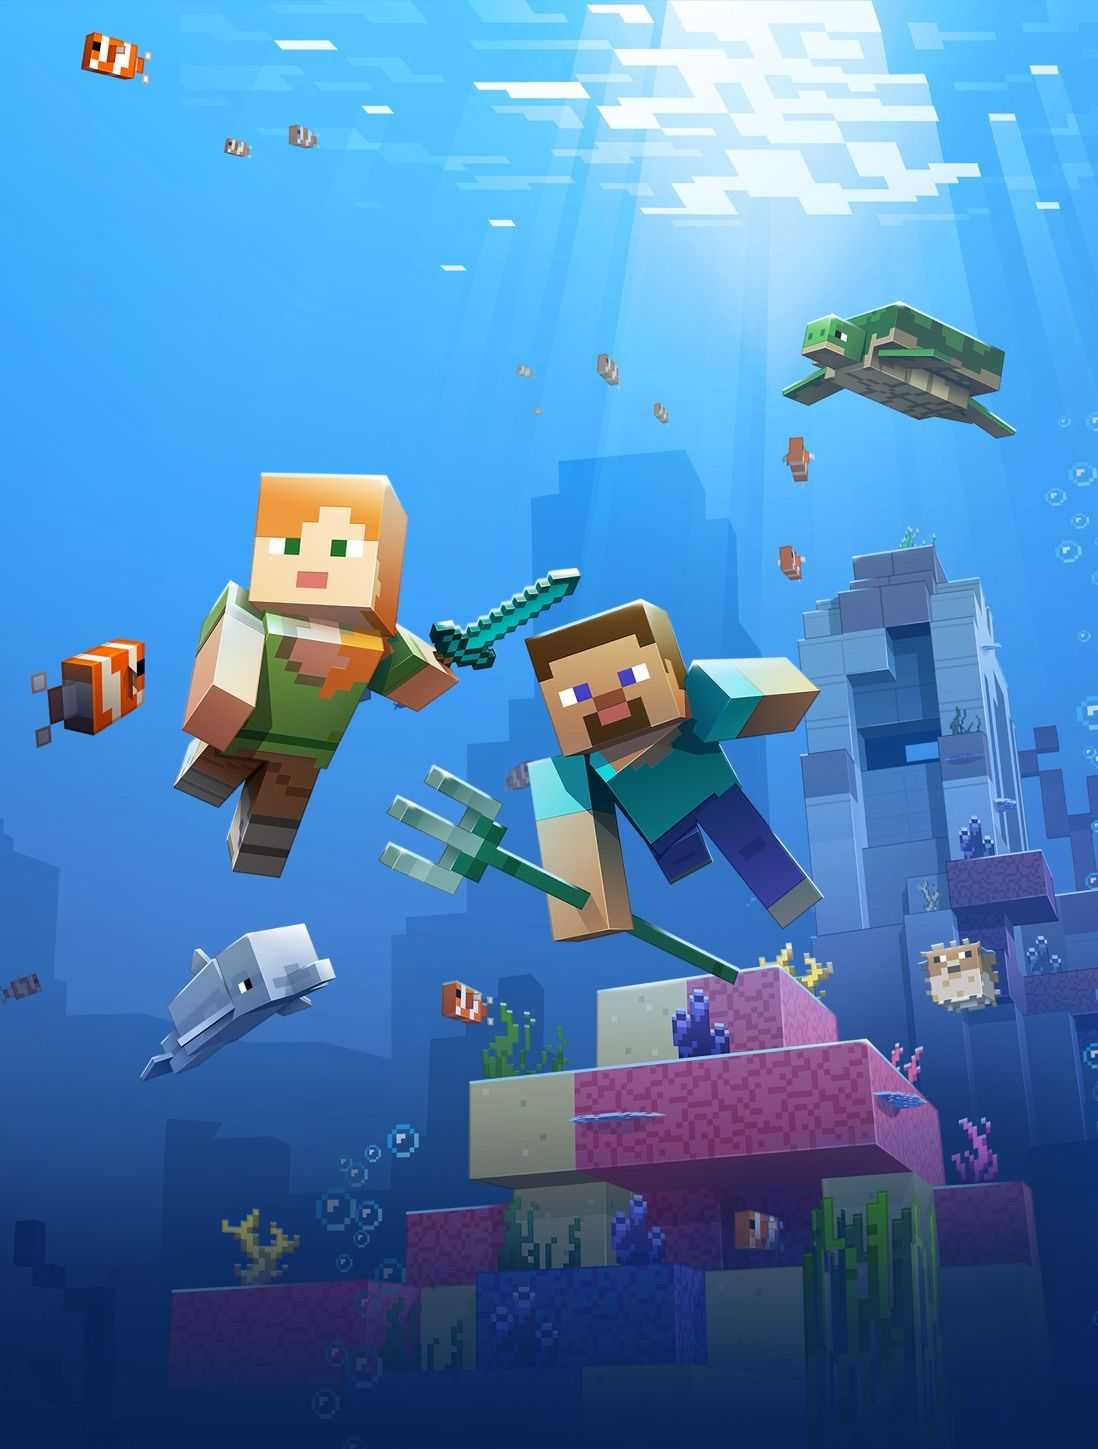 Minecraft Makes a Splash App Store Story in 2020 (With